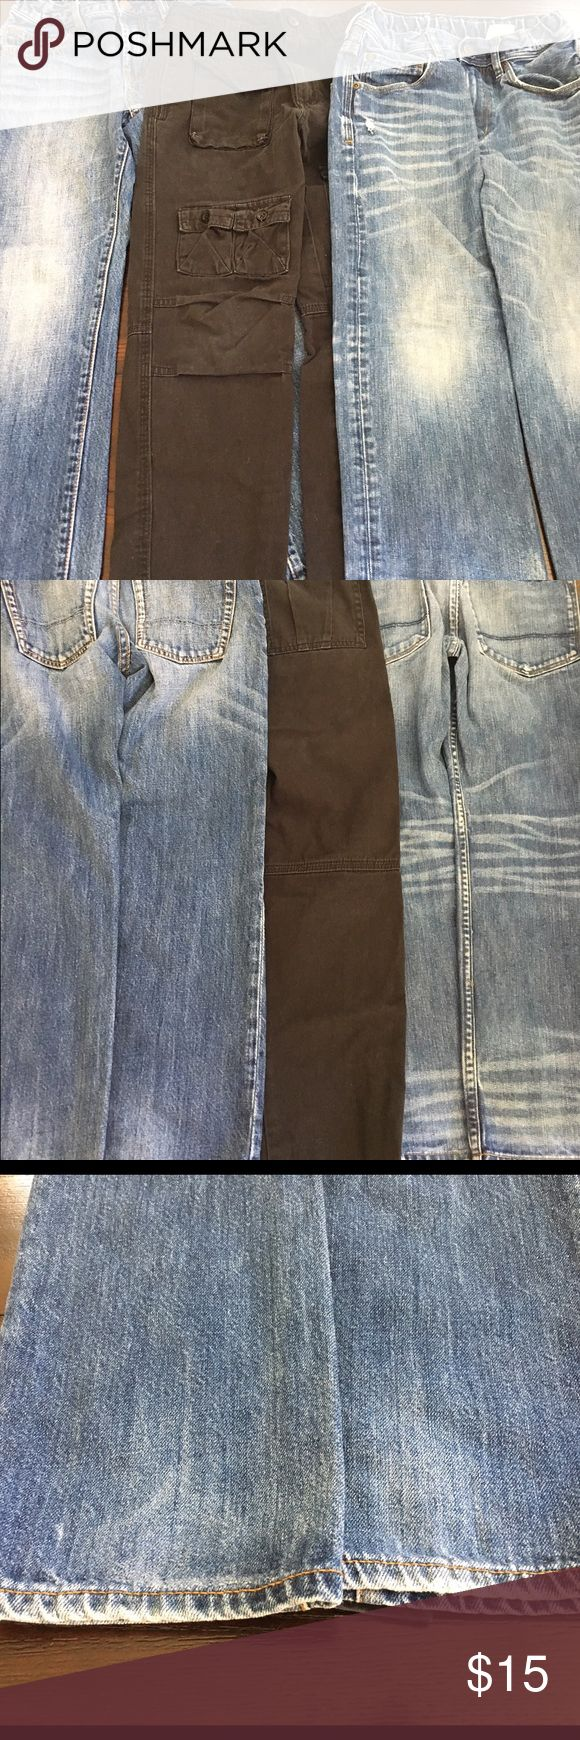 Boys jeans Lot Sz 10 &Denim Sean John Gap Old Navy Lot of 9 pairs of boys pants size 10; good condition some have distressed patches may b wear or design - see pics. 6 pair of Old Navy -2 jeans -straight & skinny; Gray- super skinny; red skinny; blue skinny; black with side pockets. Gap Kids 1969 jeans; 1 pair Sean John black cargo pants; &denim relaxed whiskered distressed jeans. Proceeds go to Project Wellness fund for children & families. Had to edit to add $11 for shipping as these weigh…